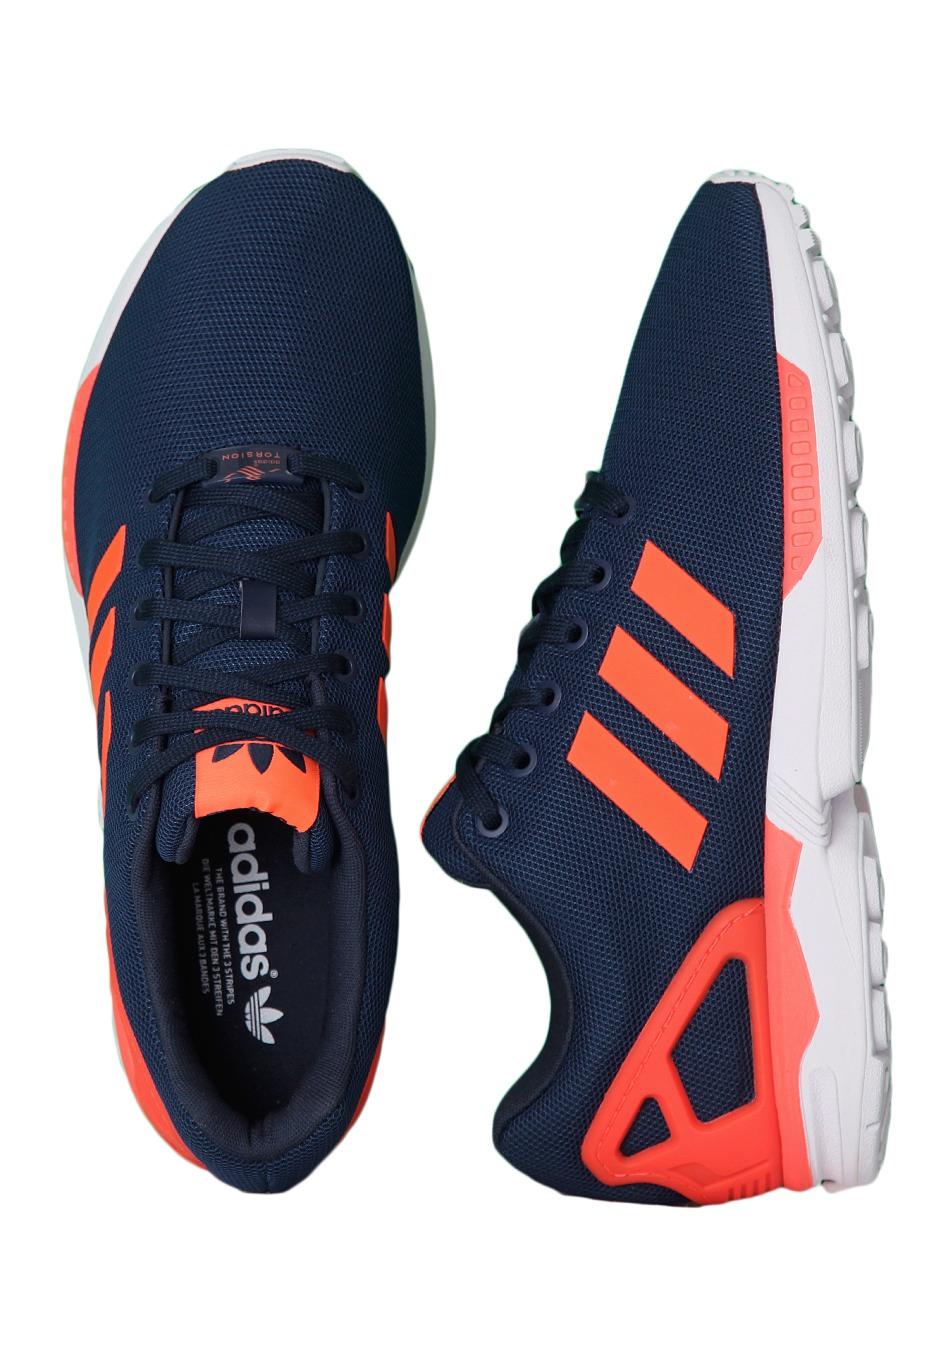 promo code 8ee0c 414c4 Adidas - ZX Flux New Navy/Infrared/Running White - Shoes